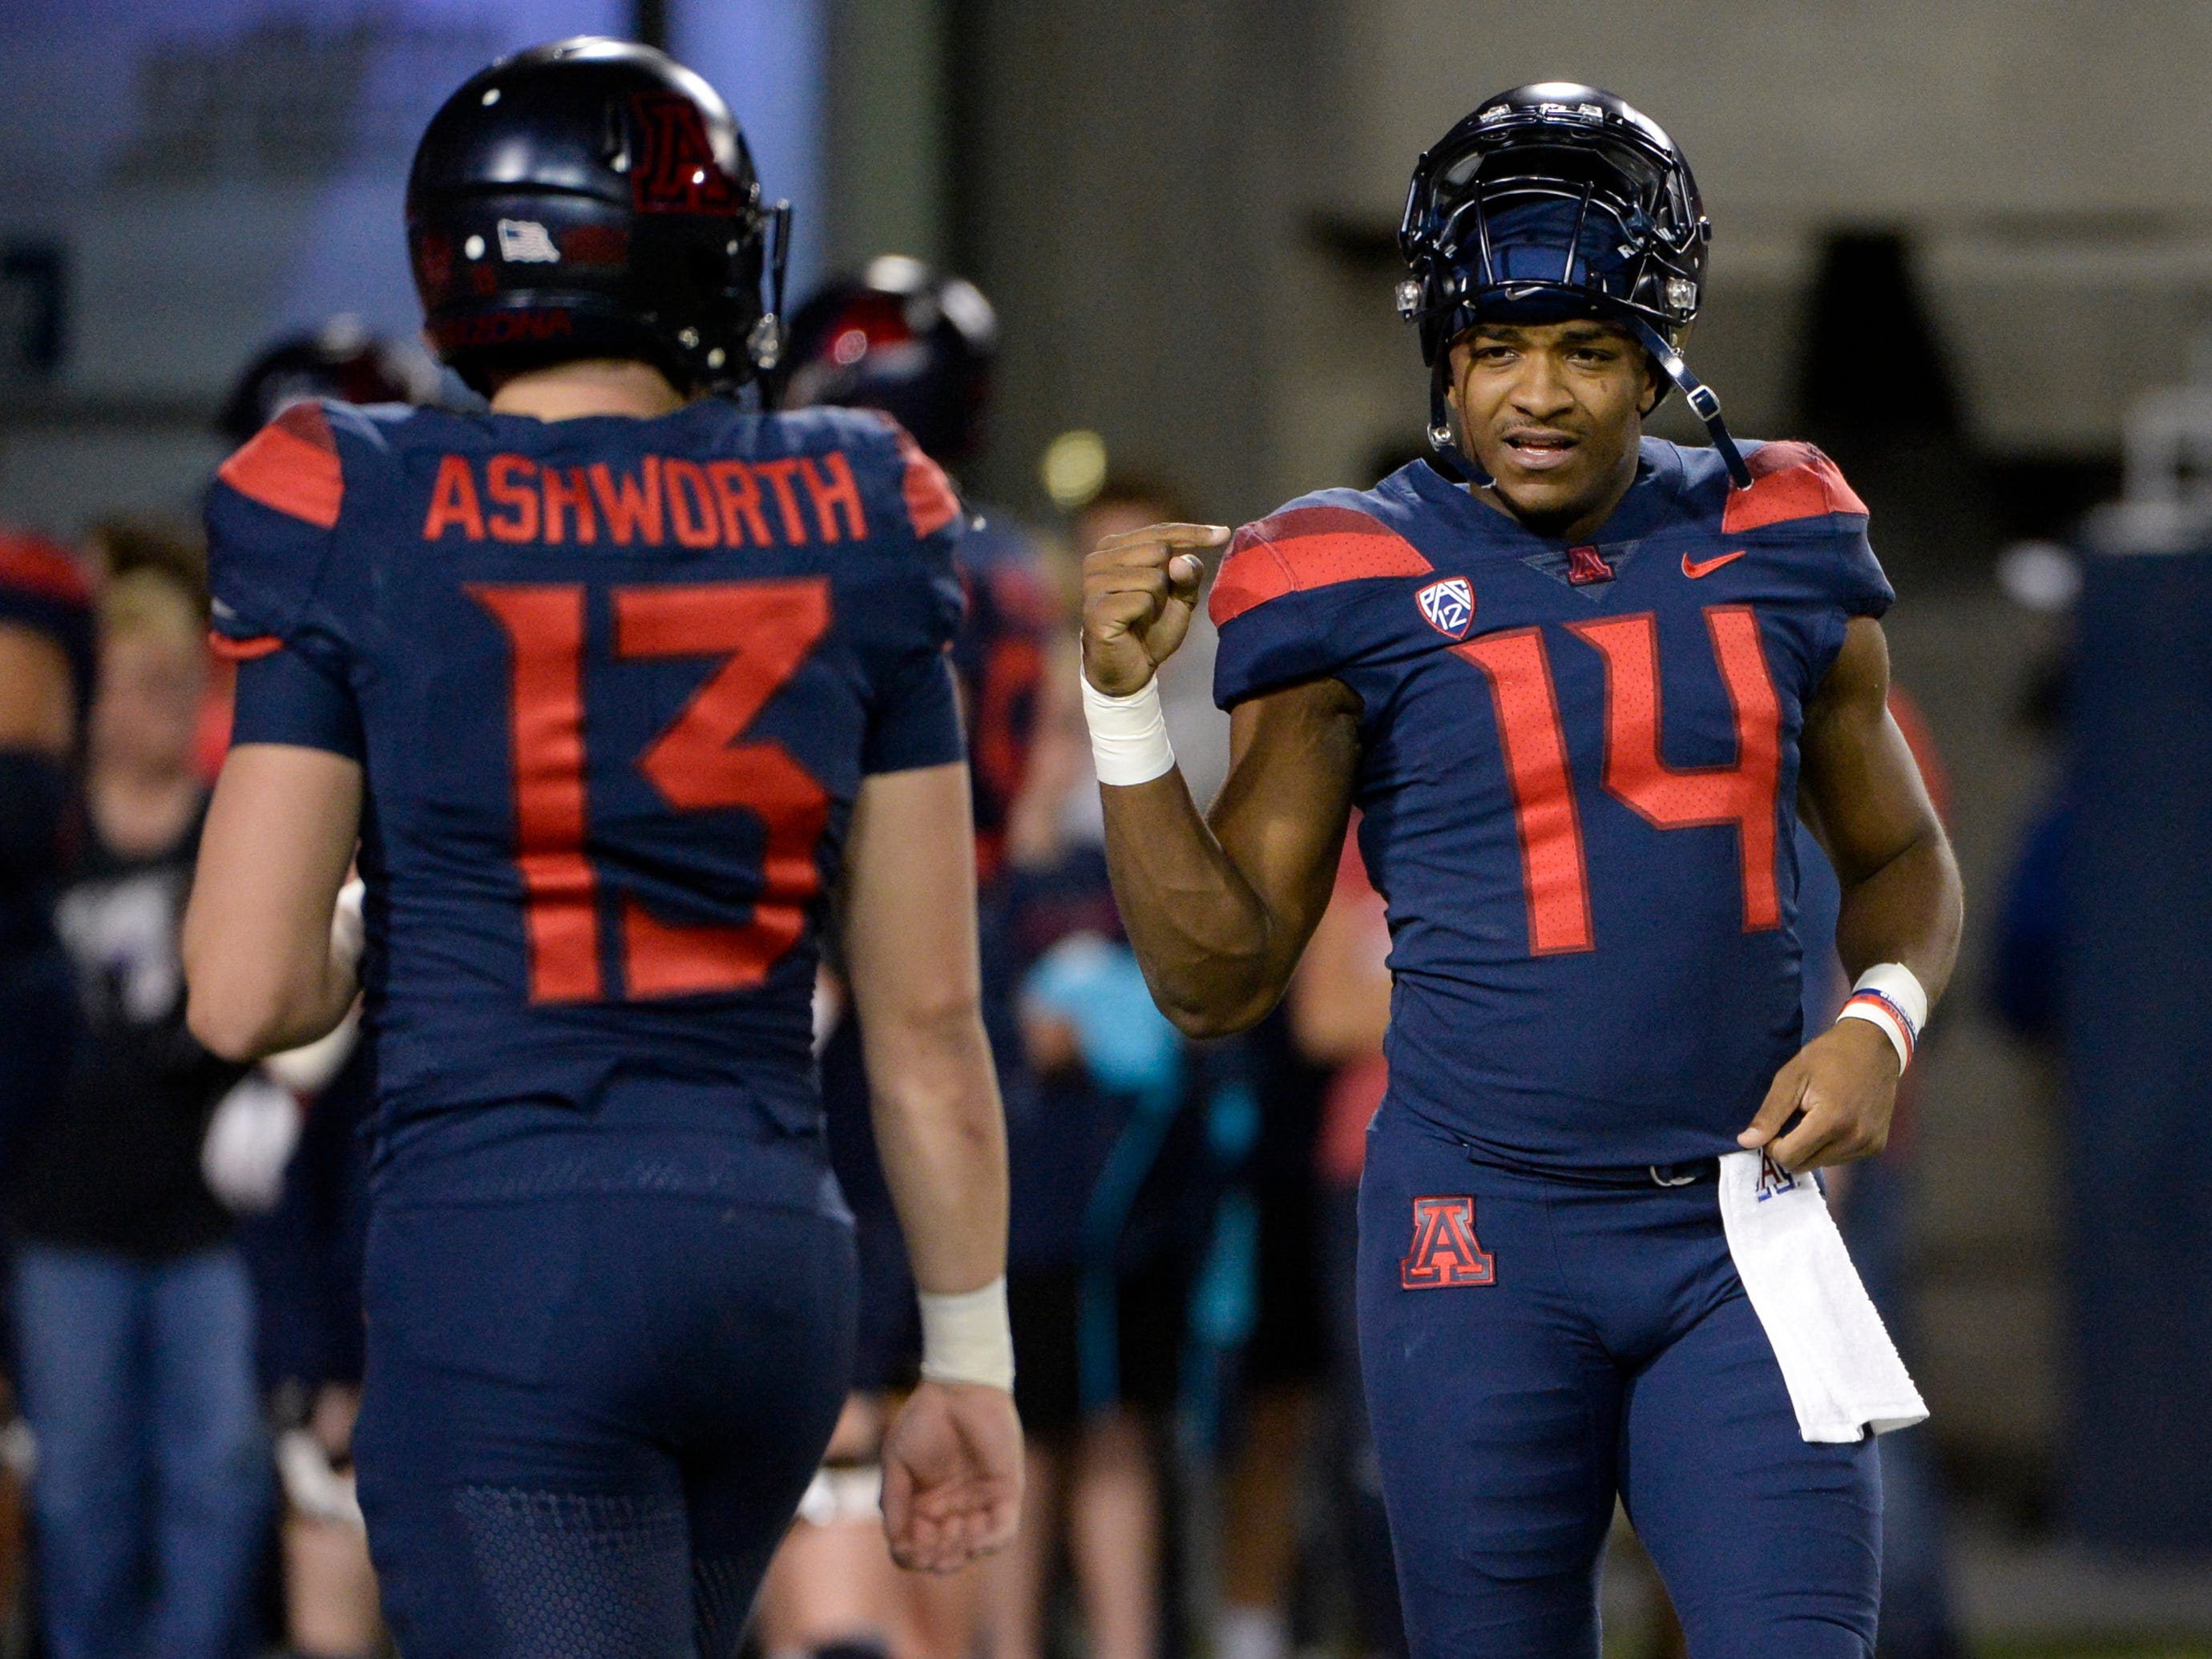 Nov 2, 2018; Tucson, AZ, USA; Arizona Wildcats quarterback Khalil Tate (14) signals to quarterback Luke Ashworth (13) before playing against the Colorado Buffaloes at Arizona Stadium.